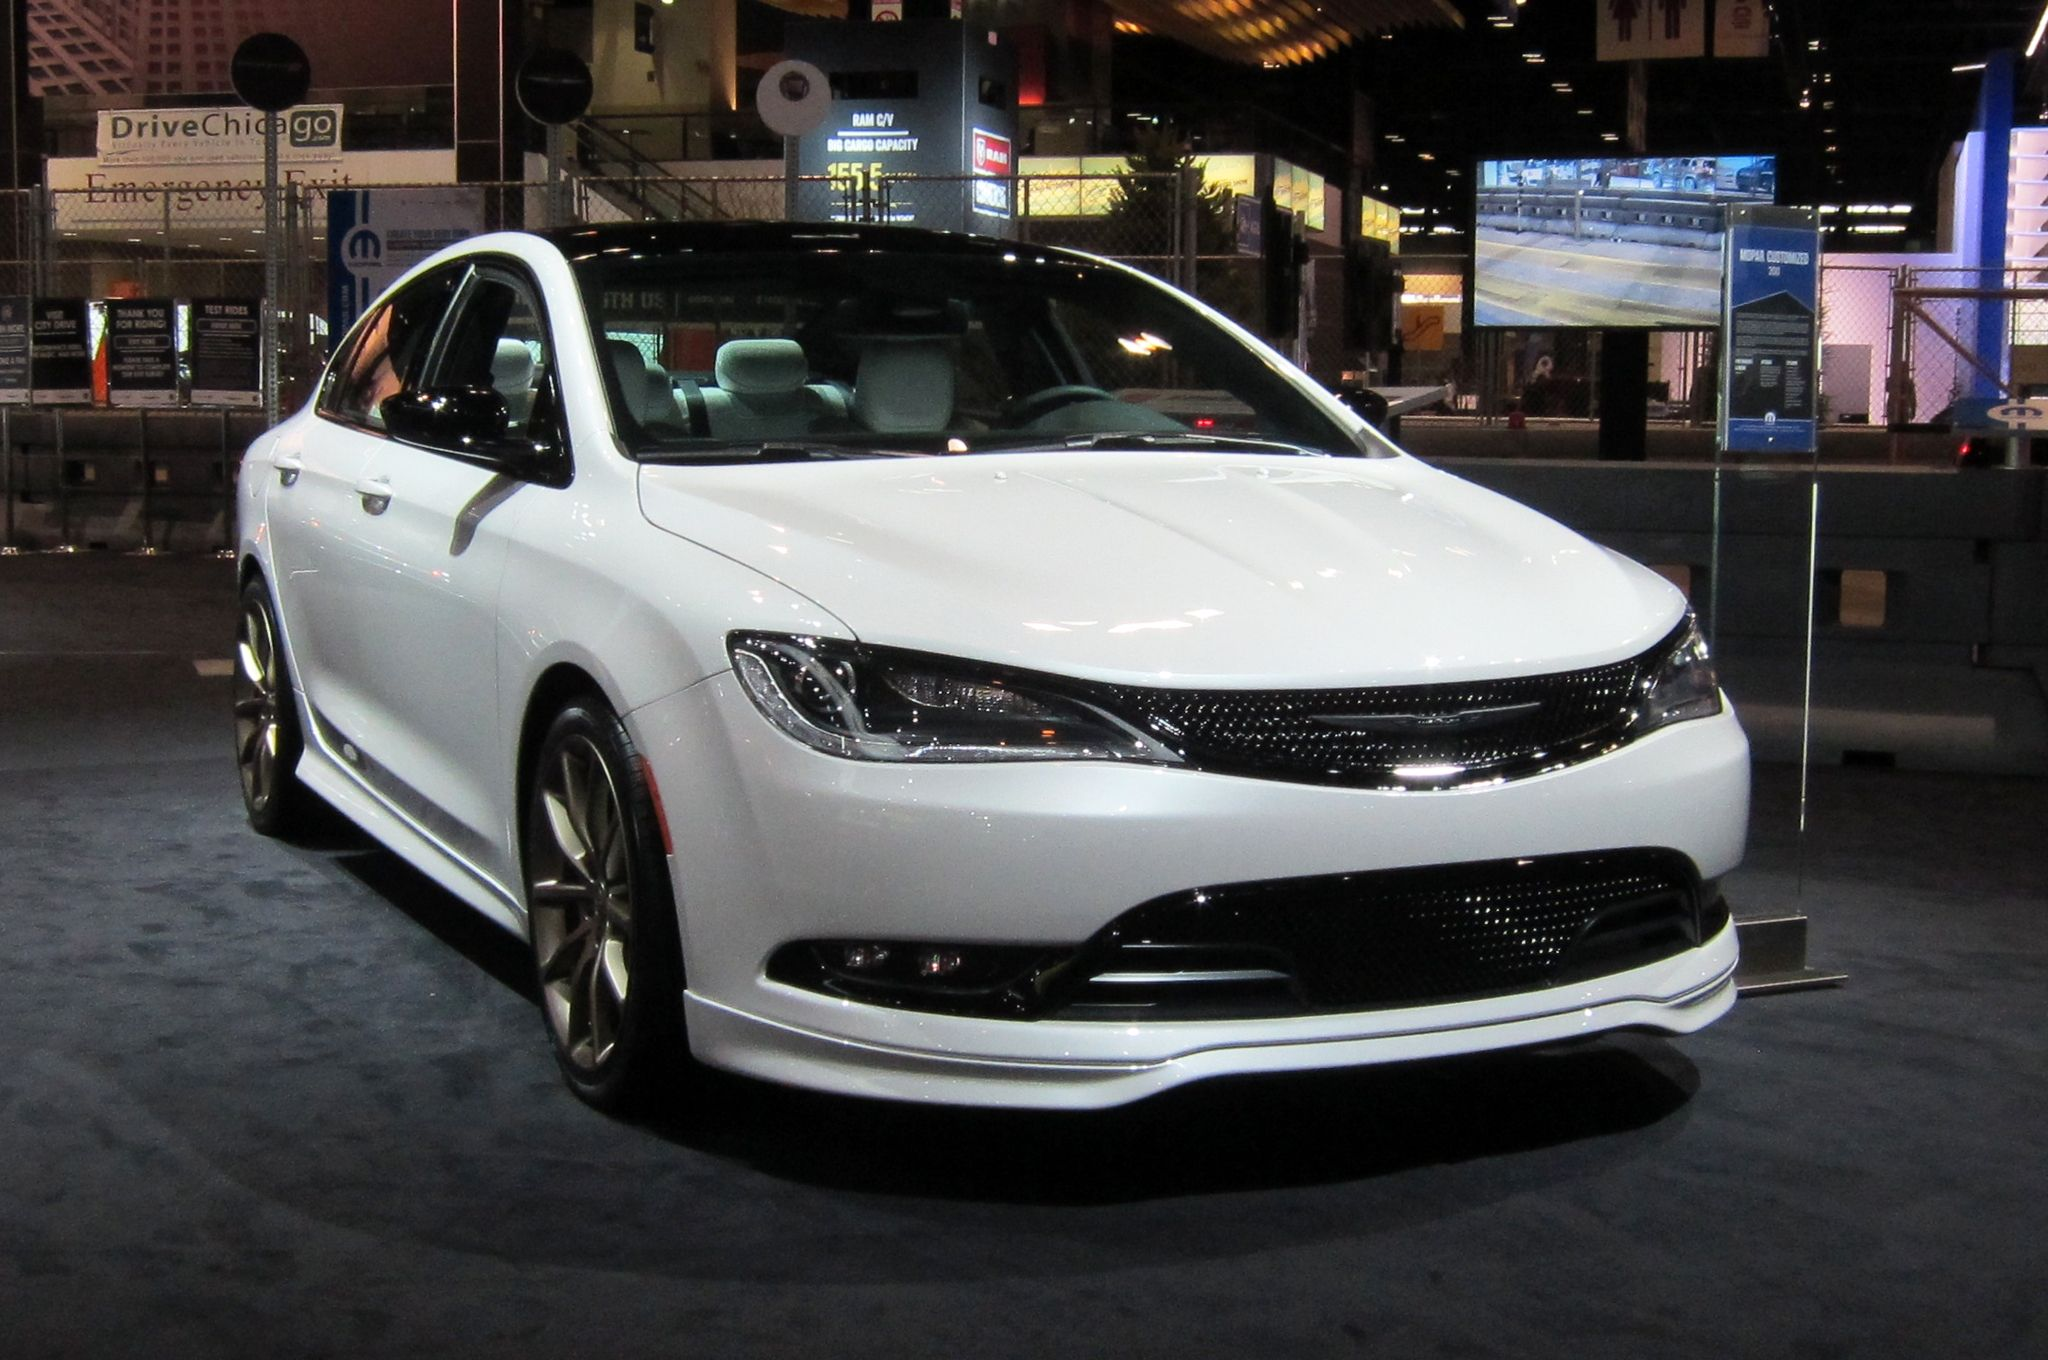 Chrysler 200 S W V6 9 Speed Automatic And Leather 29k After 2k